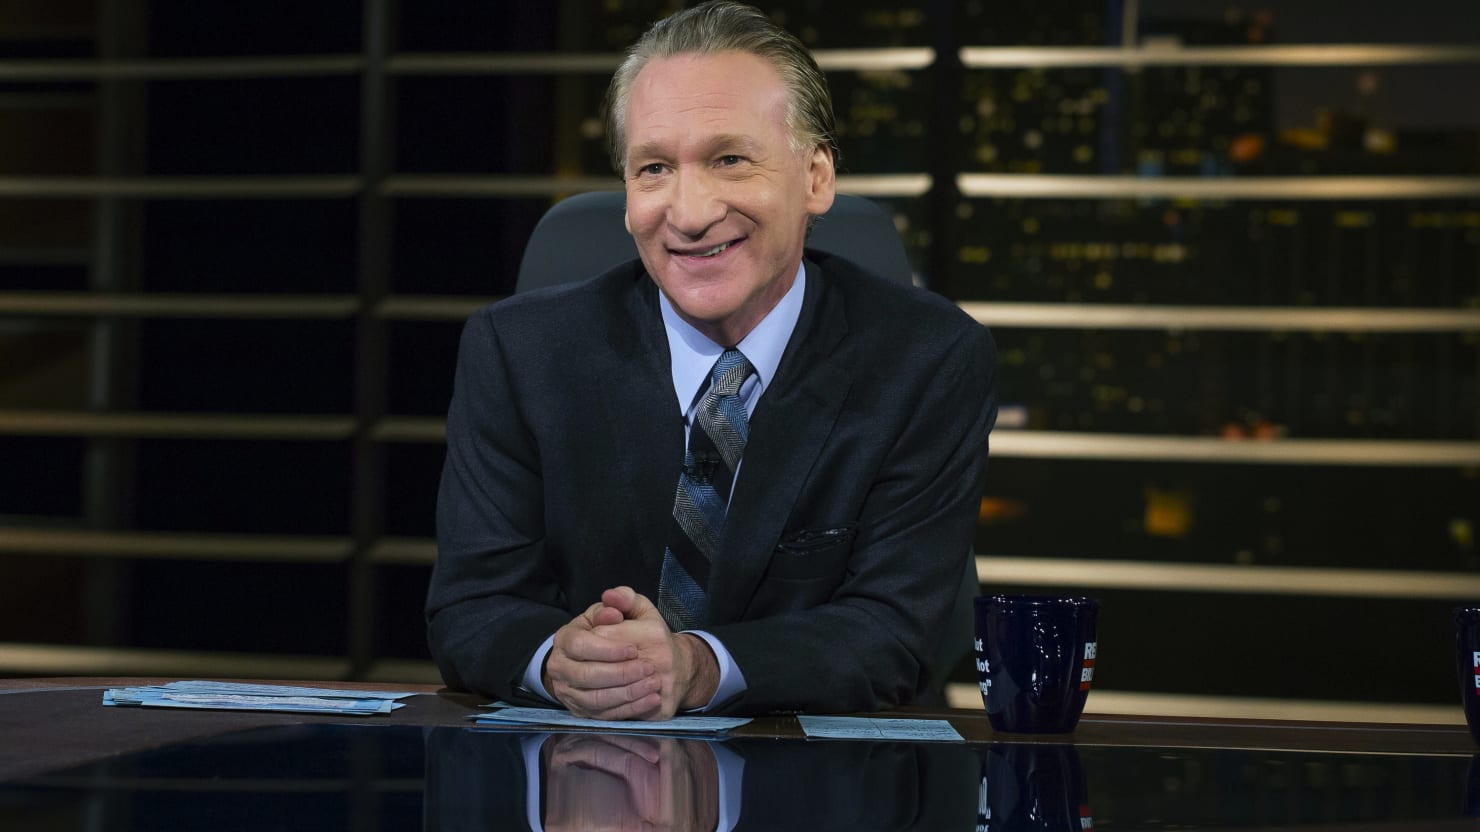 Bill Maher Brutally Mocks Alan Dershowitz Over Creepy Jeffrey Epstein Ties